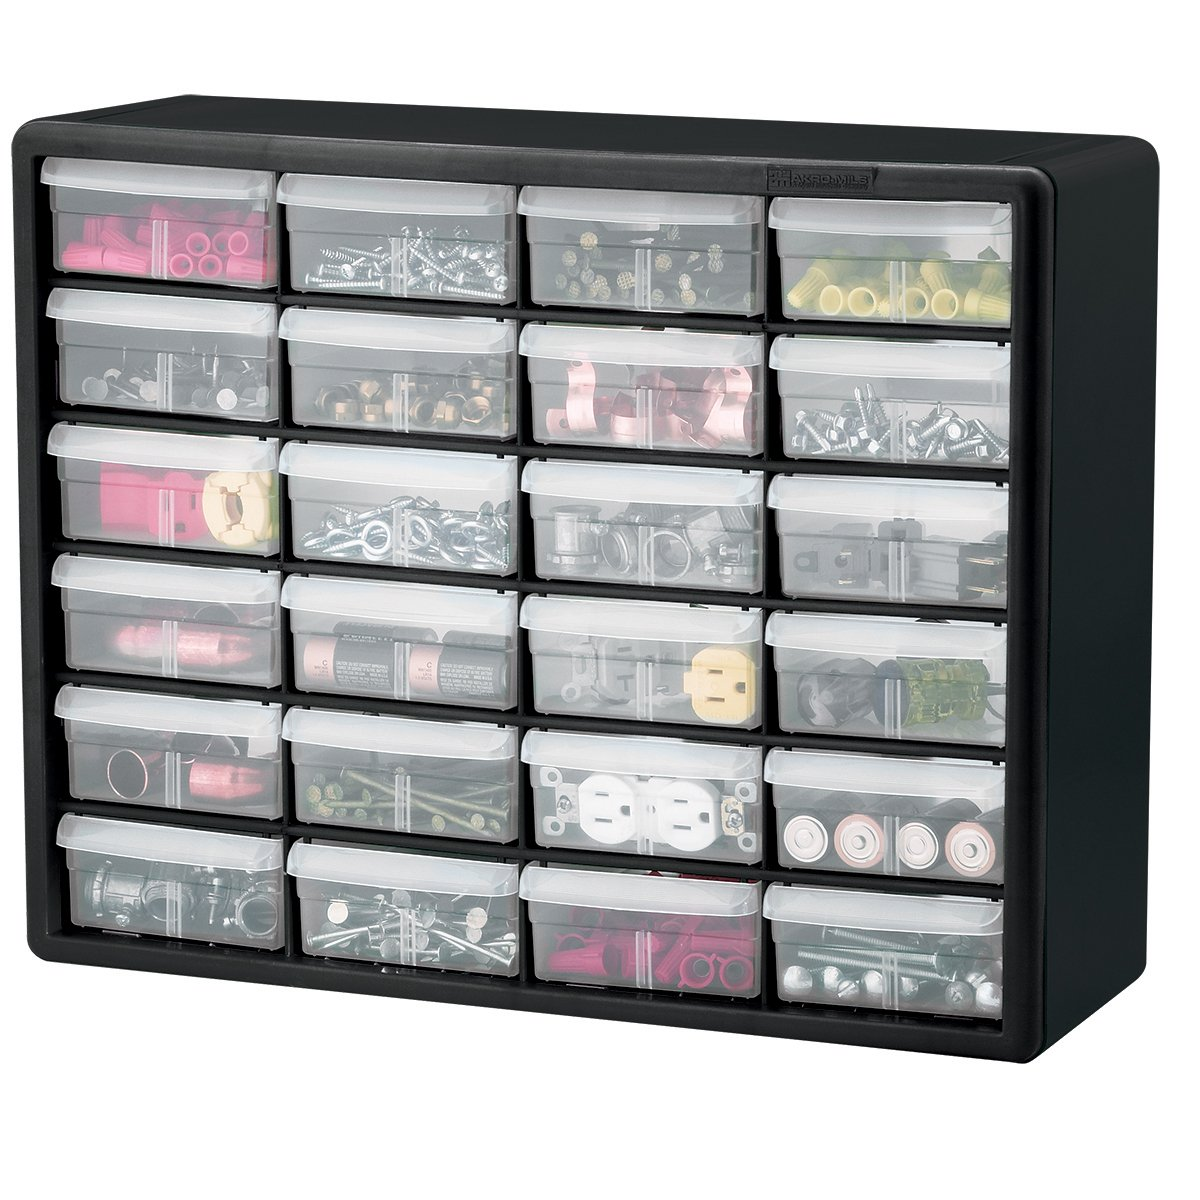 Amazon.com Akro-Mils 10724 24-Drawer Plastic Parts Storage Hardware and Craft Cabinet 20-Inch by 16-Inch by 6-1/2-Inch Black Home Improvement  sc 1 st  Amazon.com : small storage drawers plastic  - Aquiesqueretaro.Com